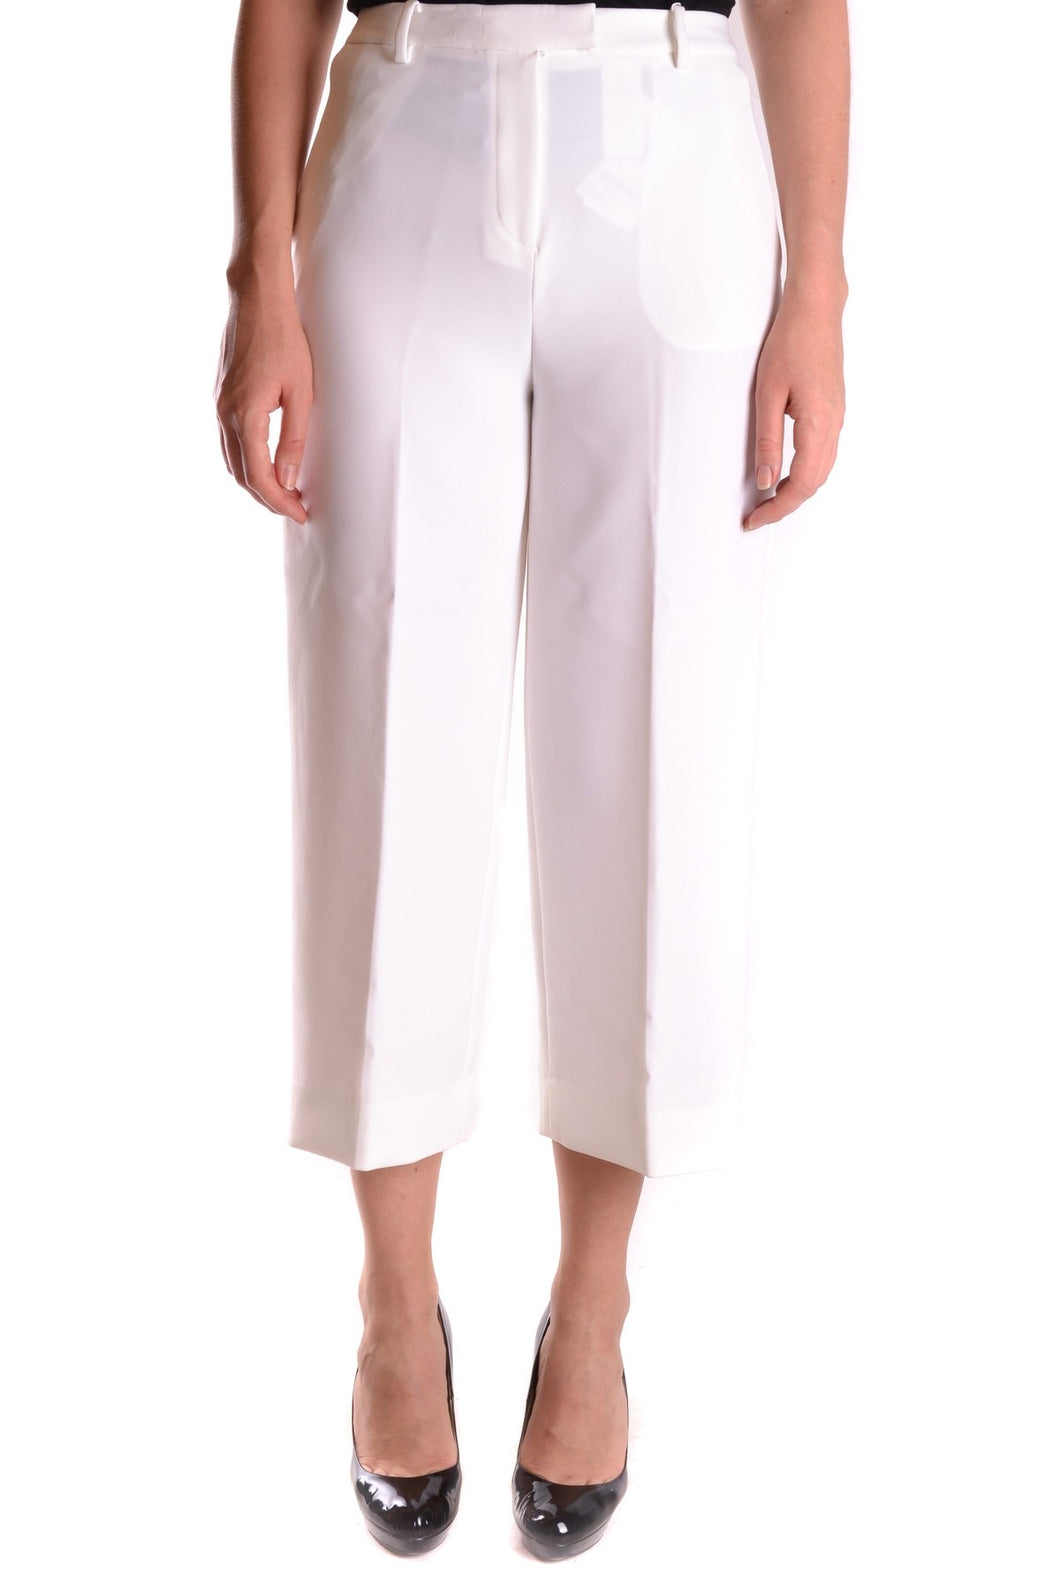 Michael Kors  Women Trousers - SisBrothers